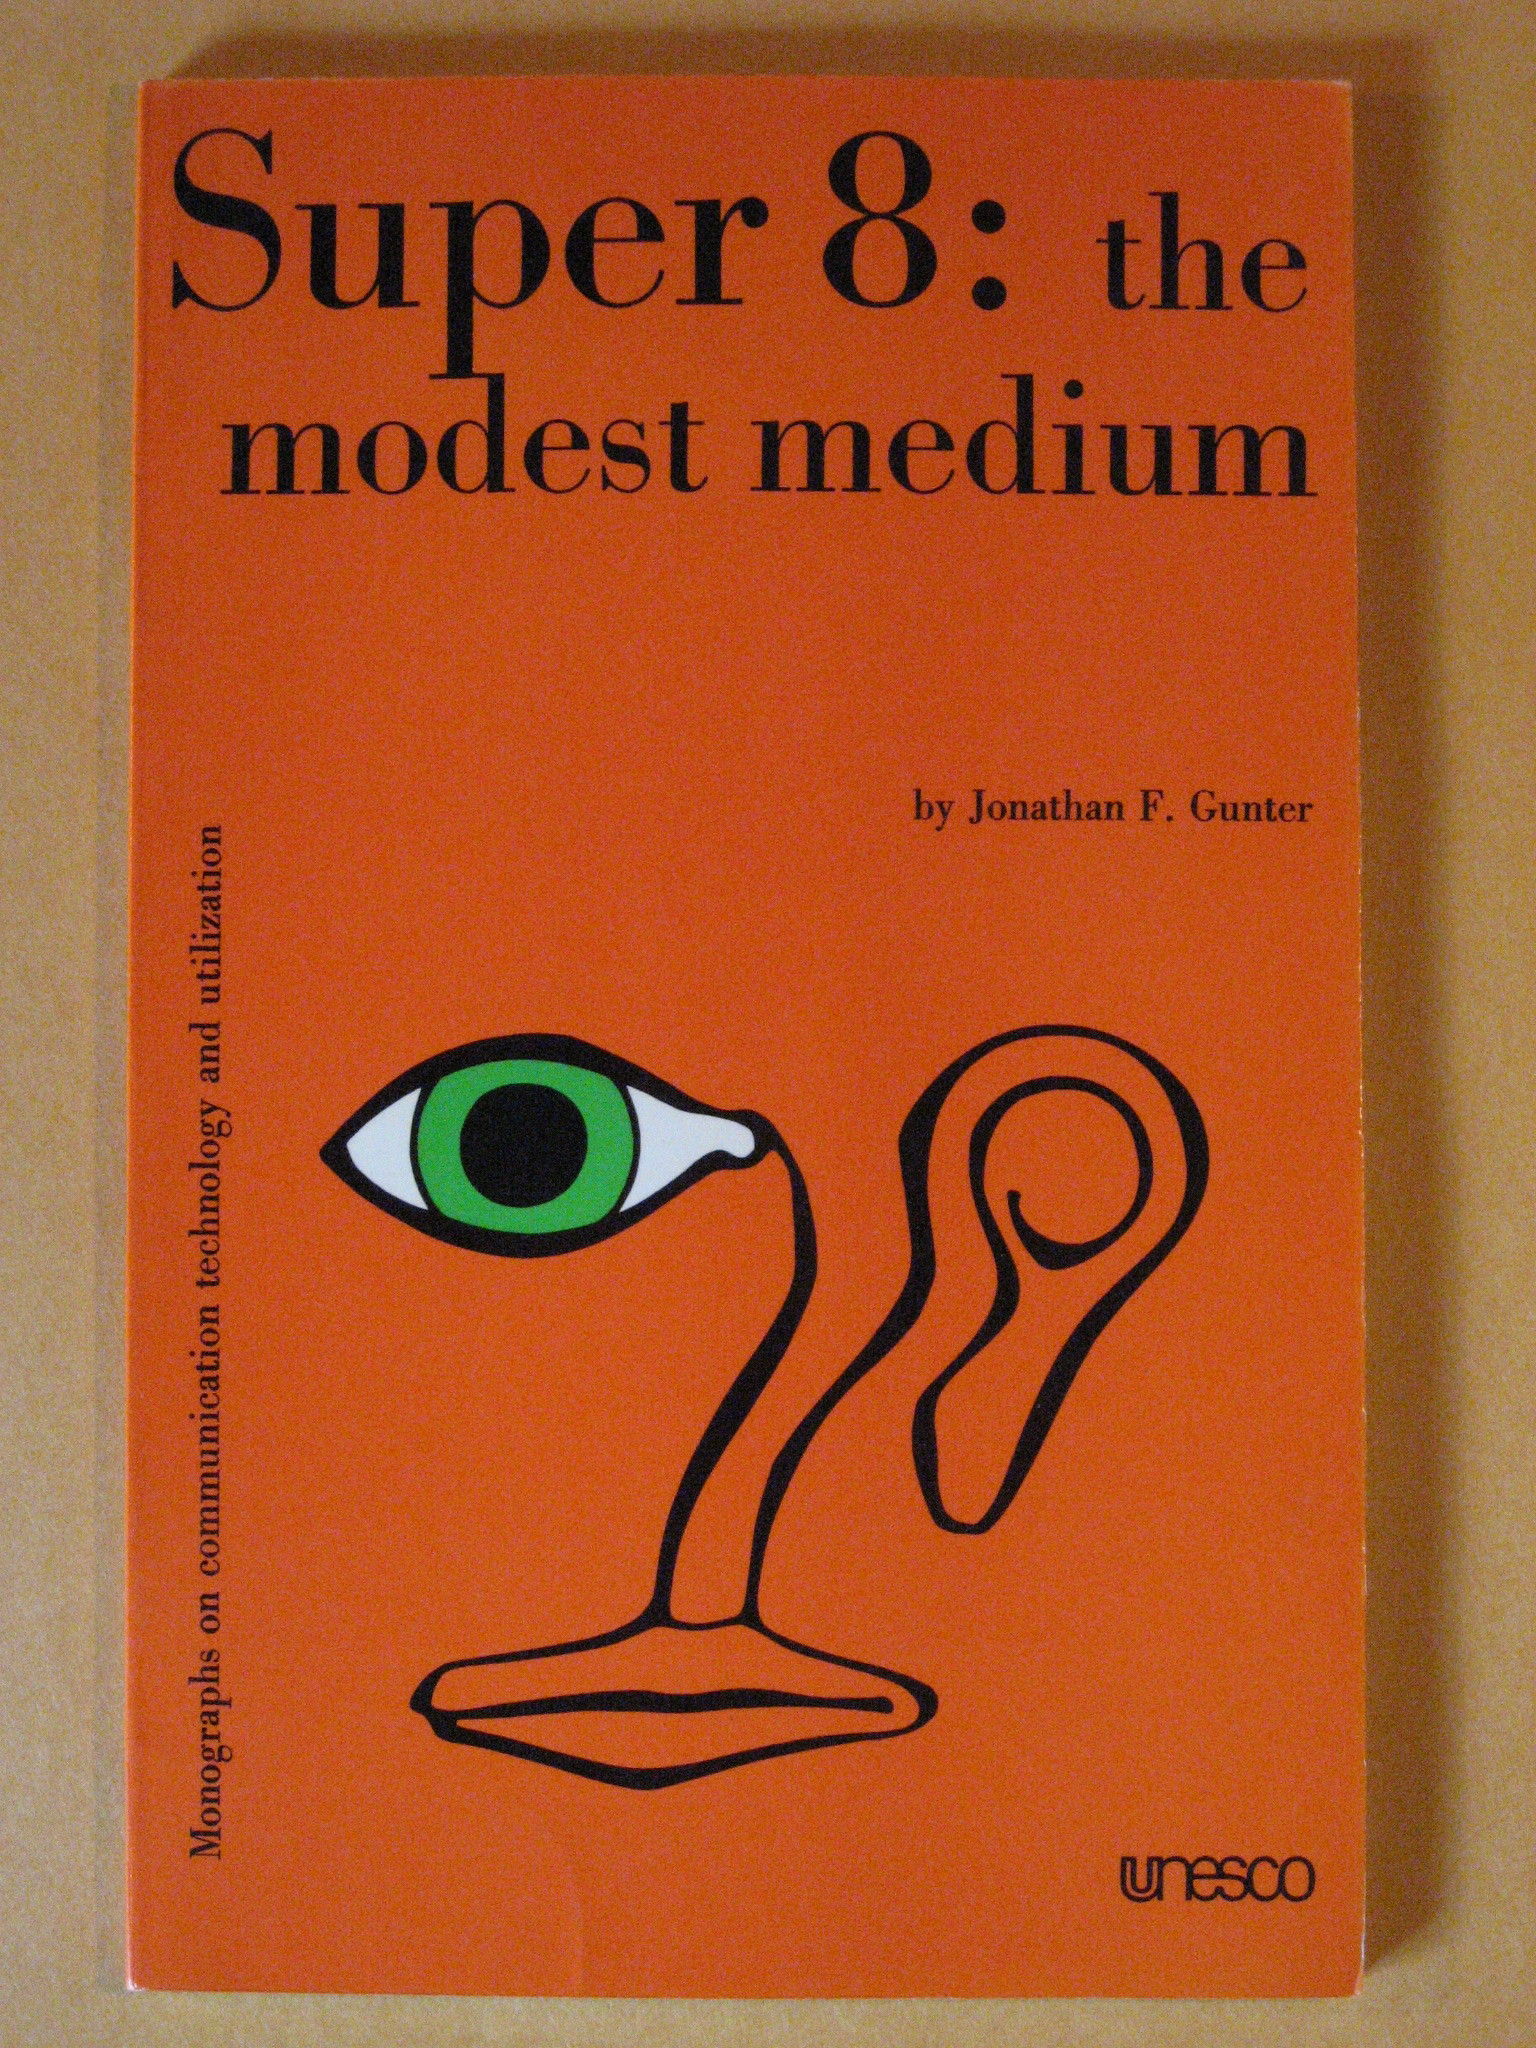 Super 8: The Modest Medium (Monographs on Communication Technology & Utilization), Gunter, Jonathan F.